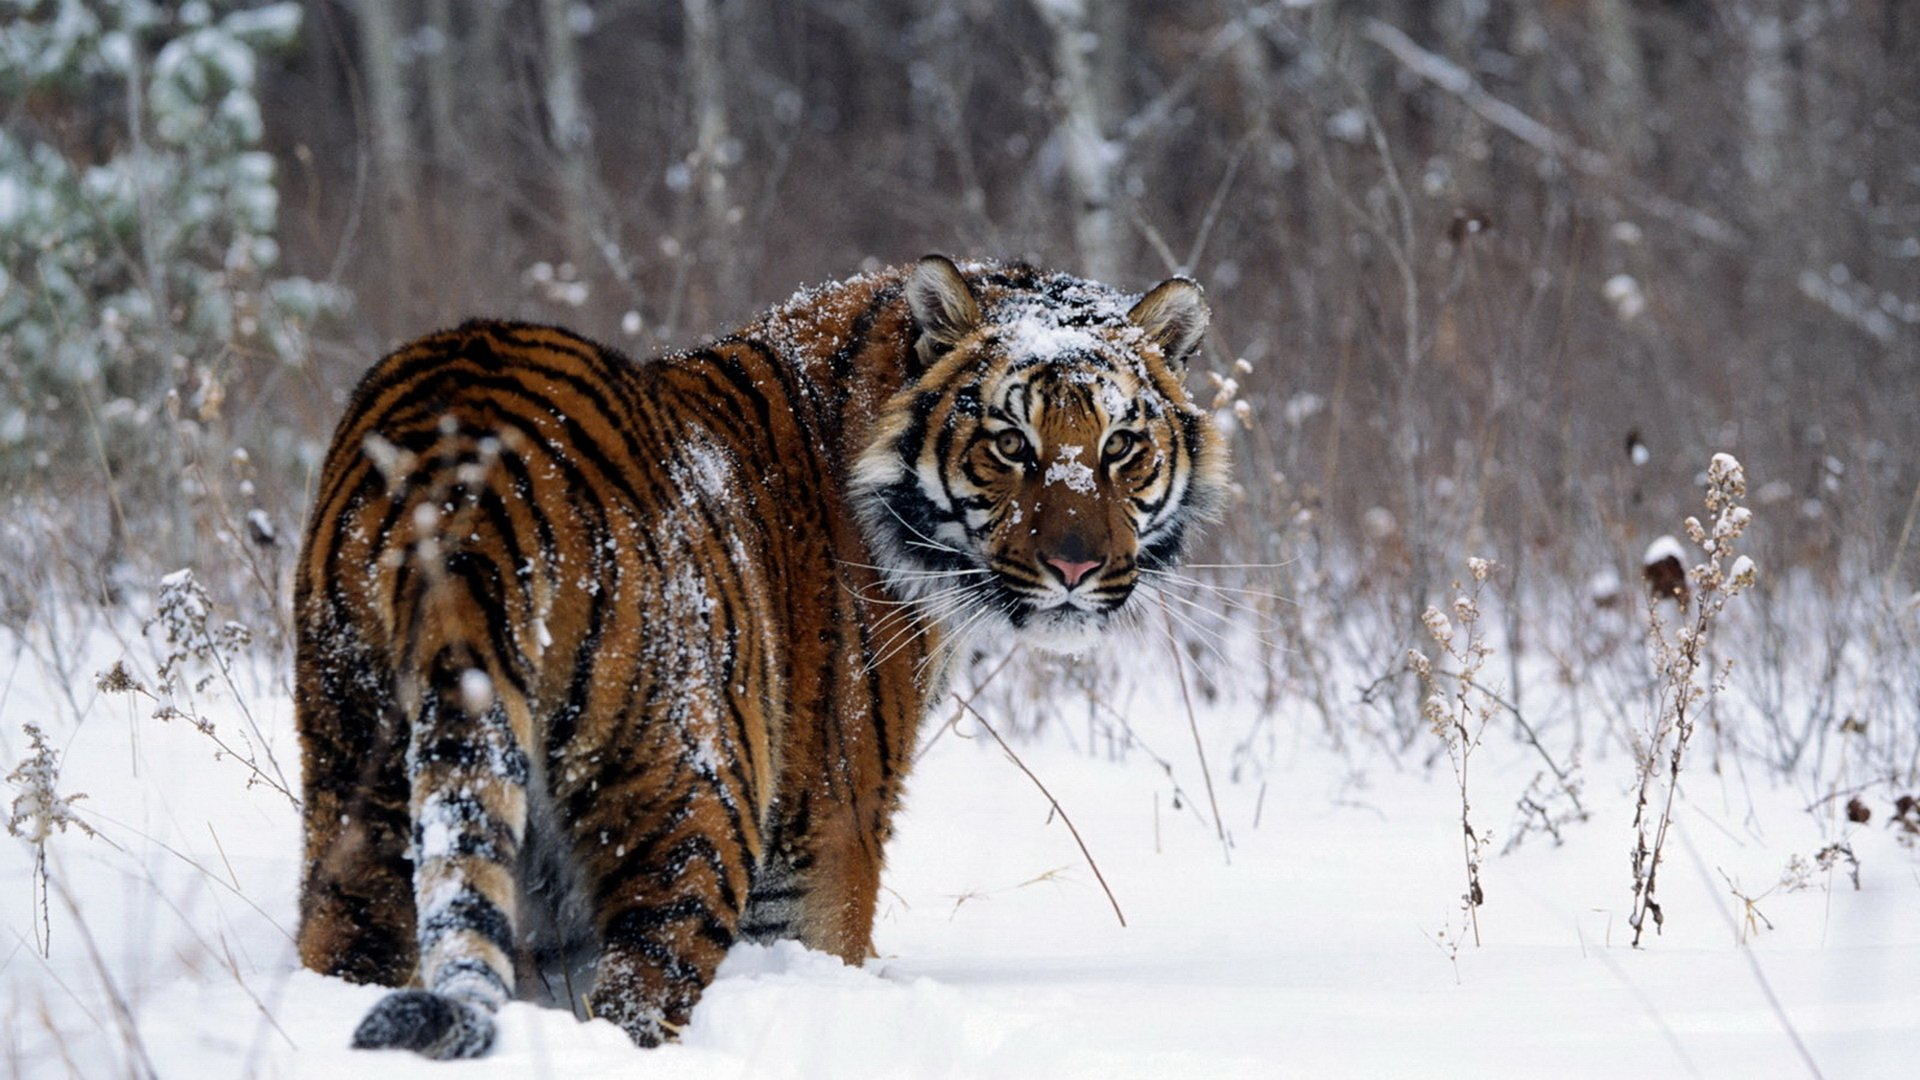 1606 Tiger Hd Wallpapers Background Images Wallpaper Abyss